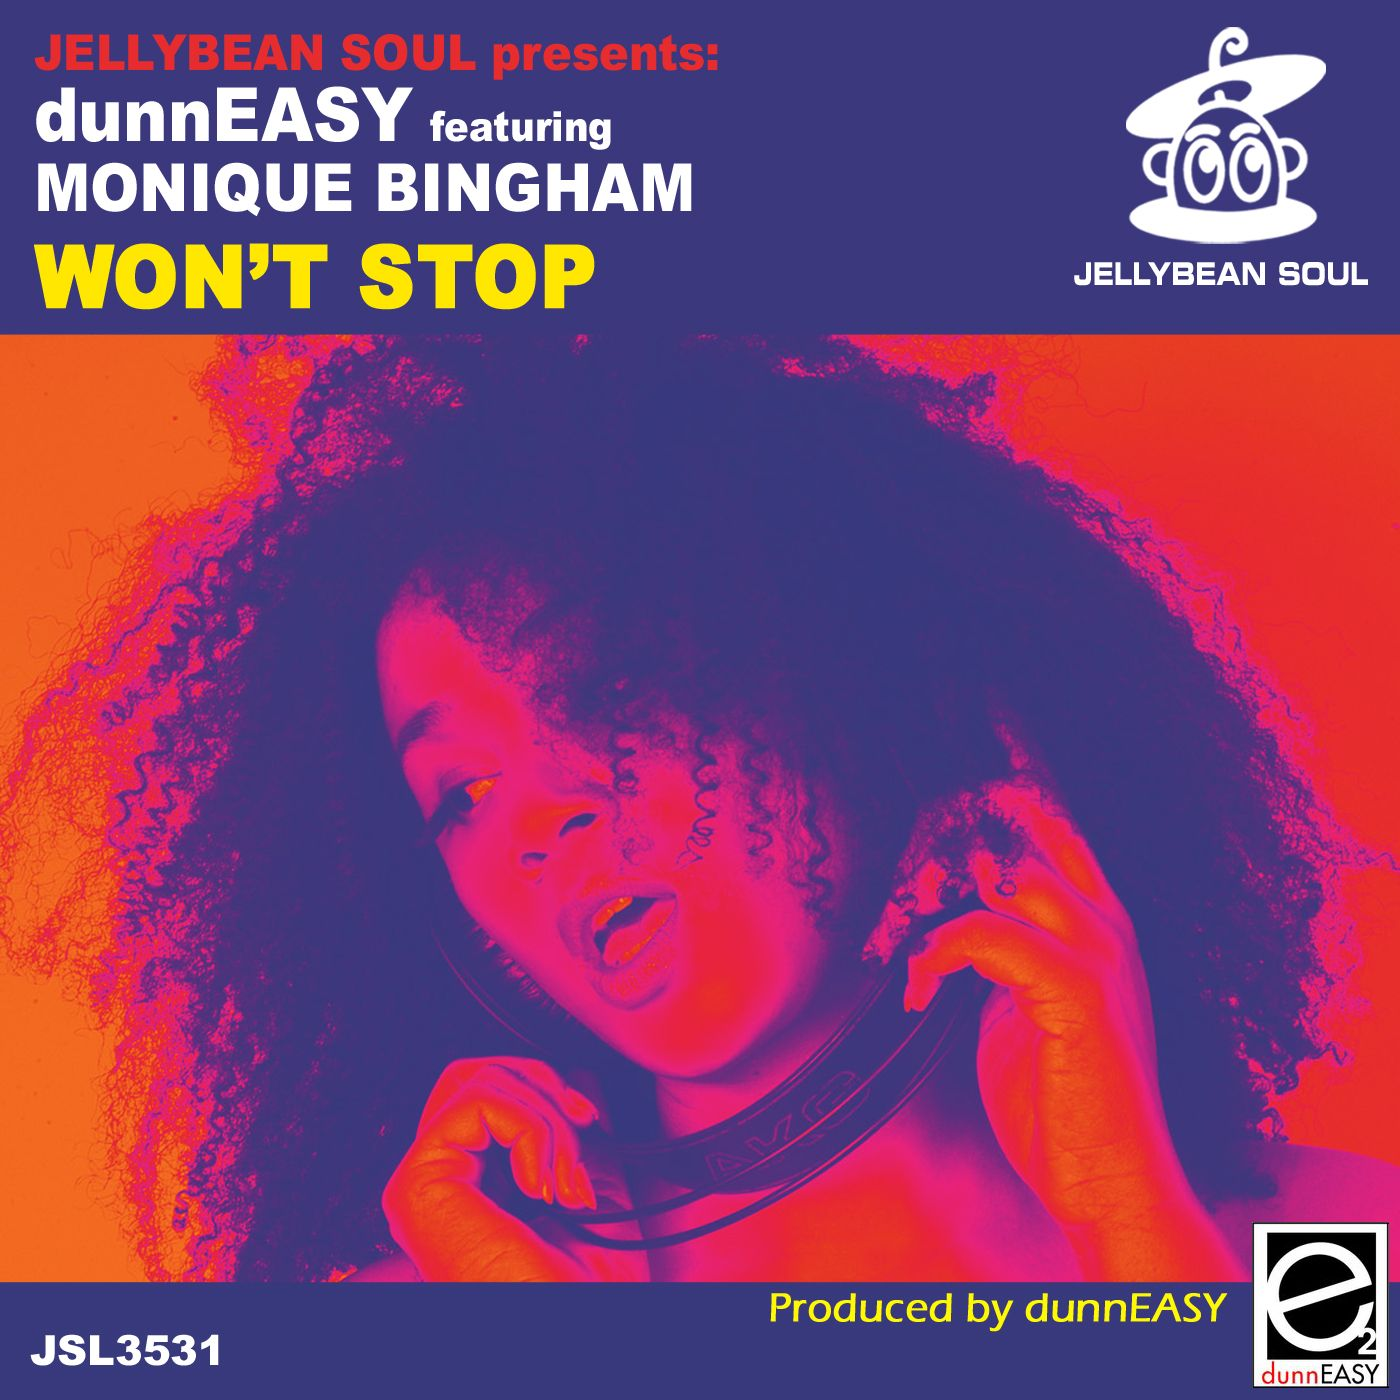 DunnEASY ft Monique Bingham